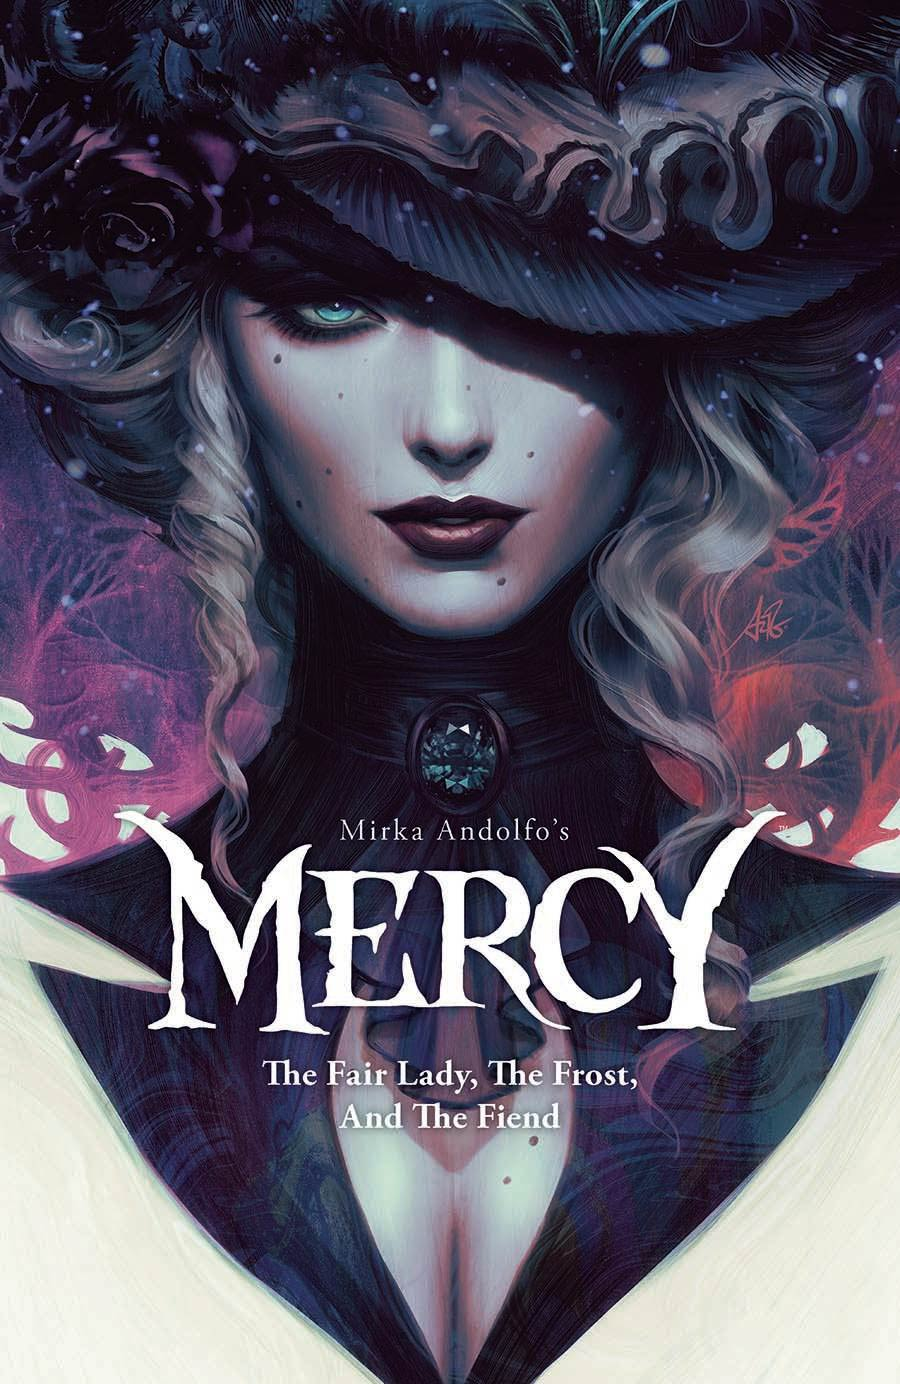 Mercy, Mirka Andolfo's Mercy: The Fair Lady The Frost and the Fiend, Mystery, Graphic Novels, Comics, Woman, Hat, Blonde Hair, Blue Eyes, Gore, Blood, Murder, Romance, Monsters